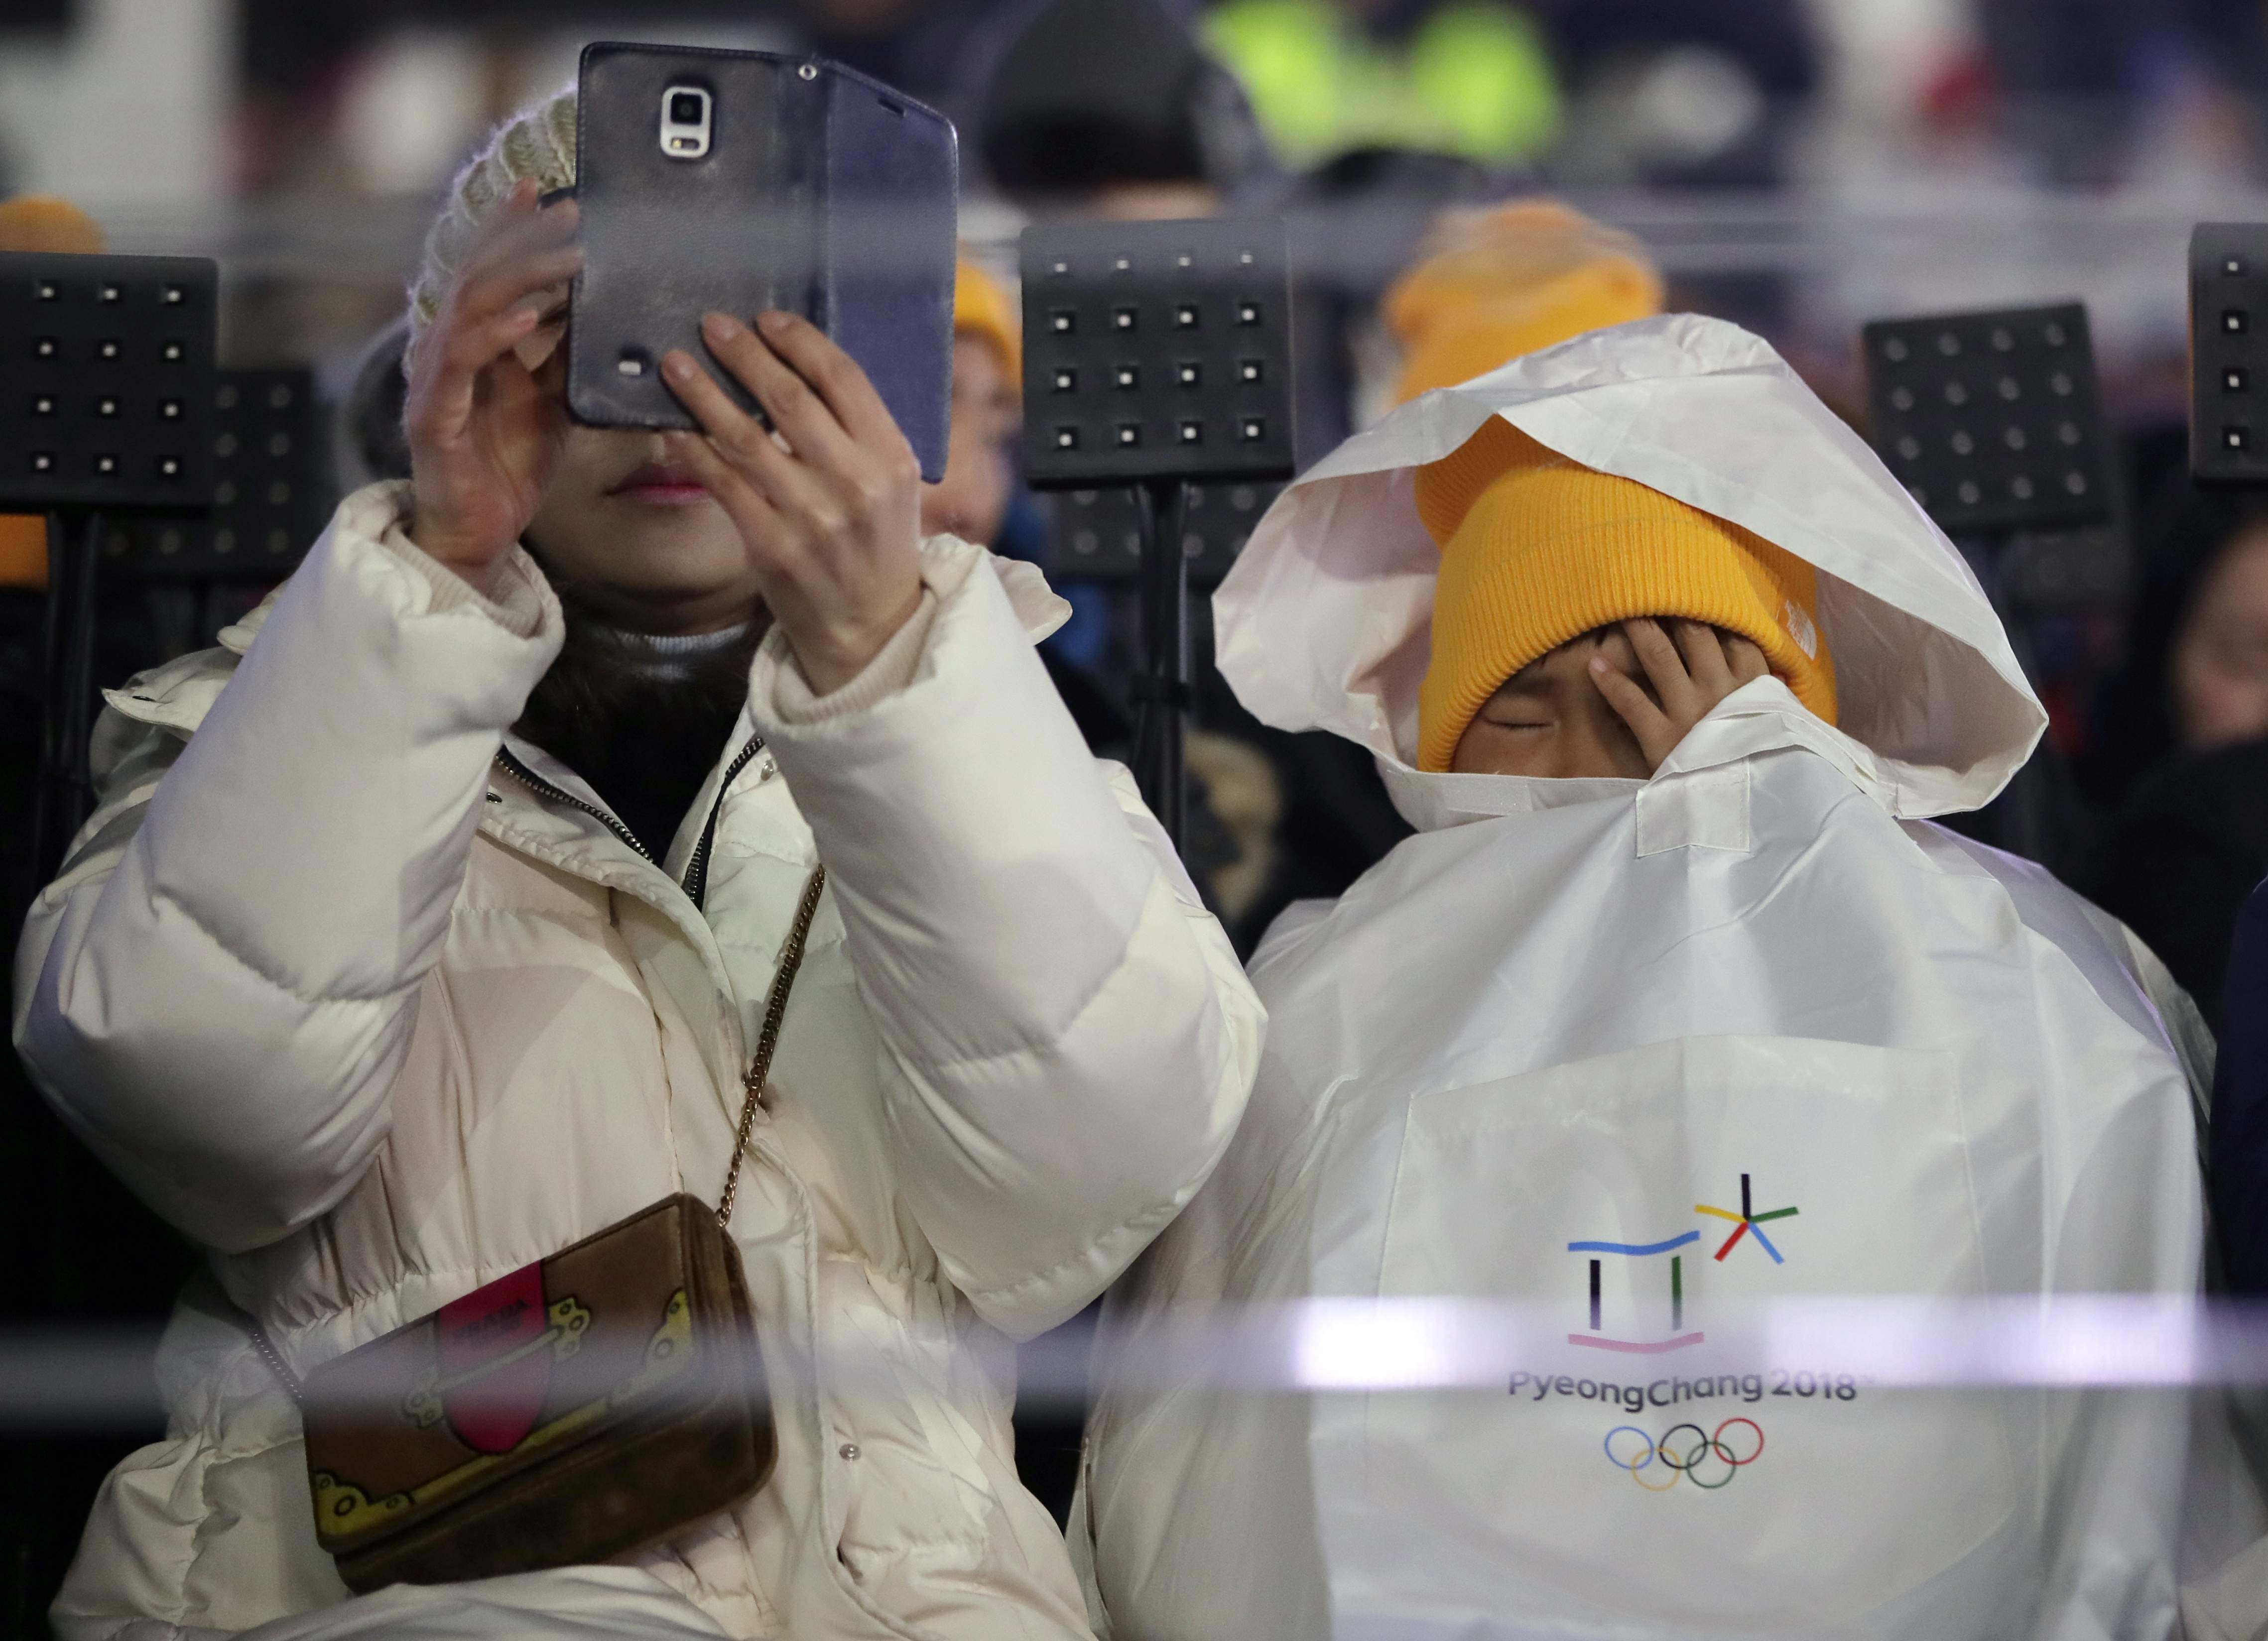 A young spectator, right, tries to keep warm during the opening ceremony of the 2018 Winter Olympics in Pyeongchang, South Korea, Friday, Feb. 9, 2018. (AP Photo/Vadim Ghirda)